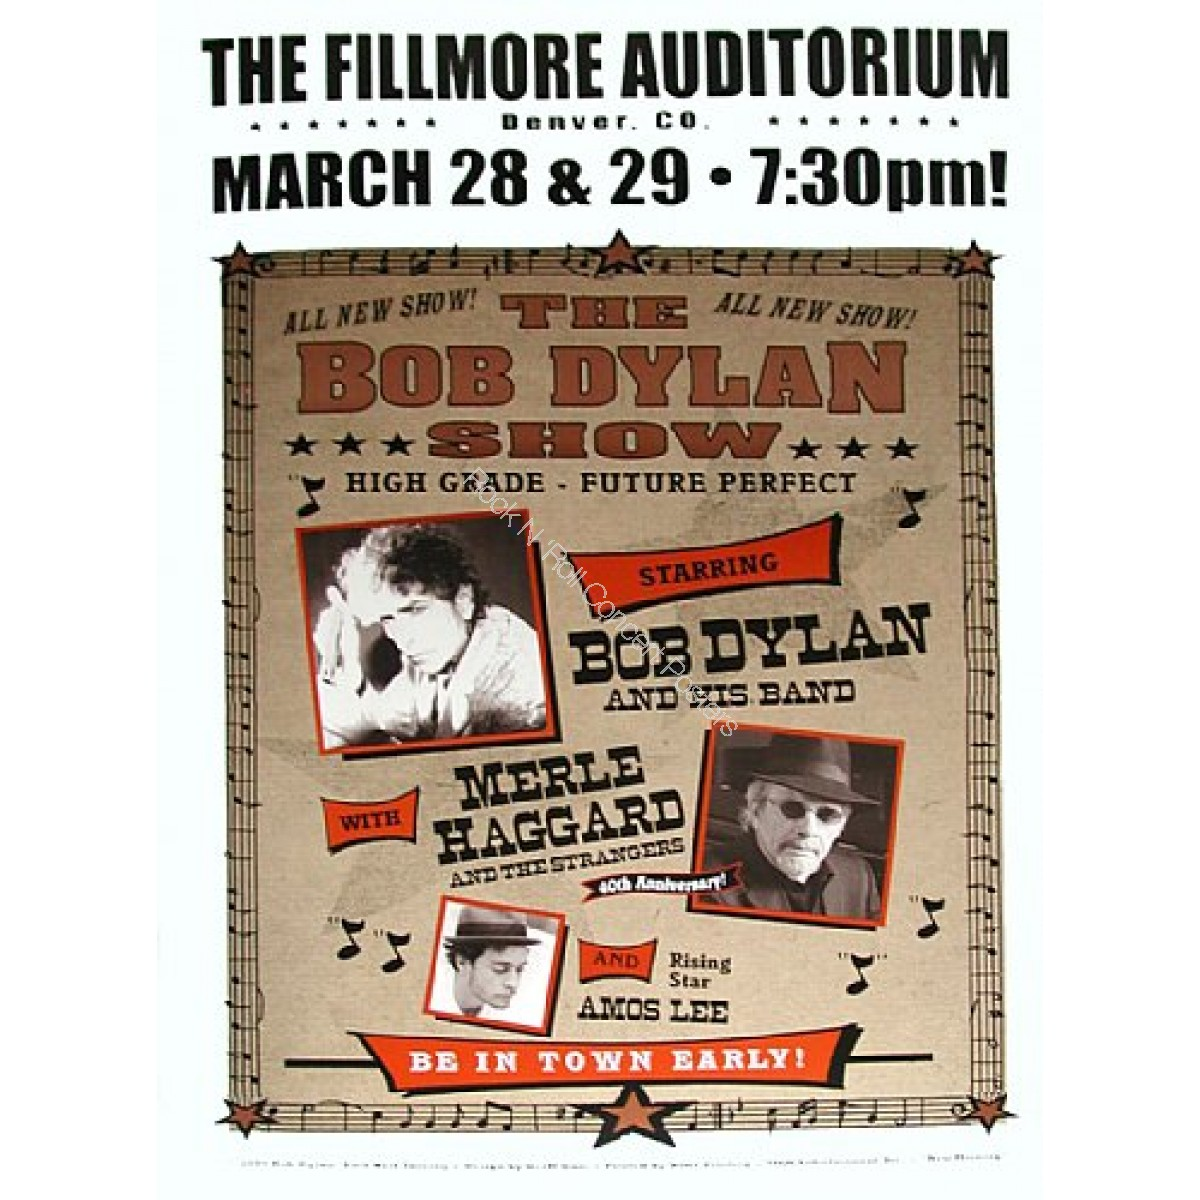 Bob Dylan, Merl Haggard & Amos Lee @ The Denver Fillmore 3/28-29/05 Official Limited Edition Poster of 200